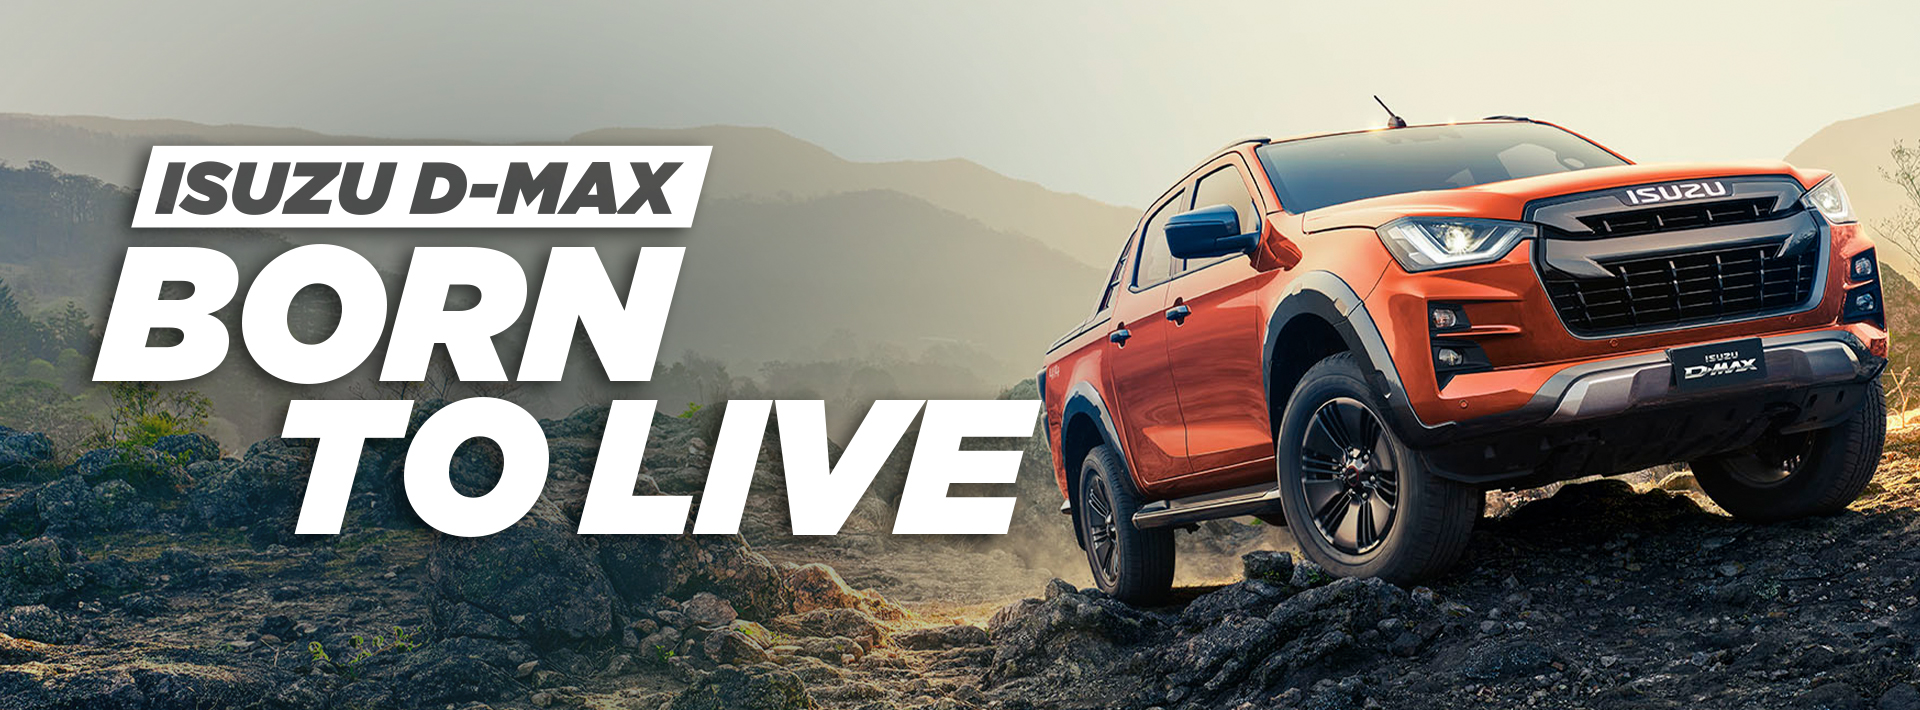 DMAX BORN TO LIVE. Discover more.